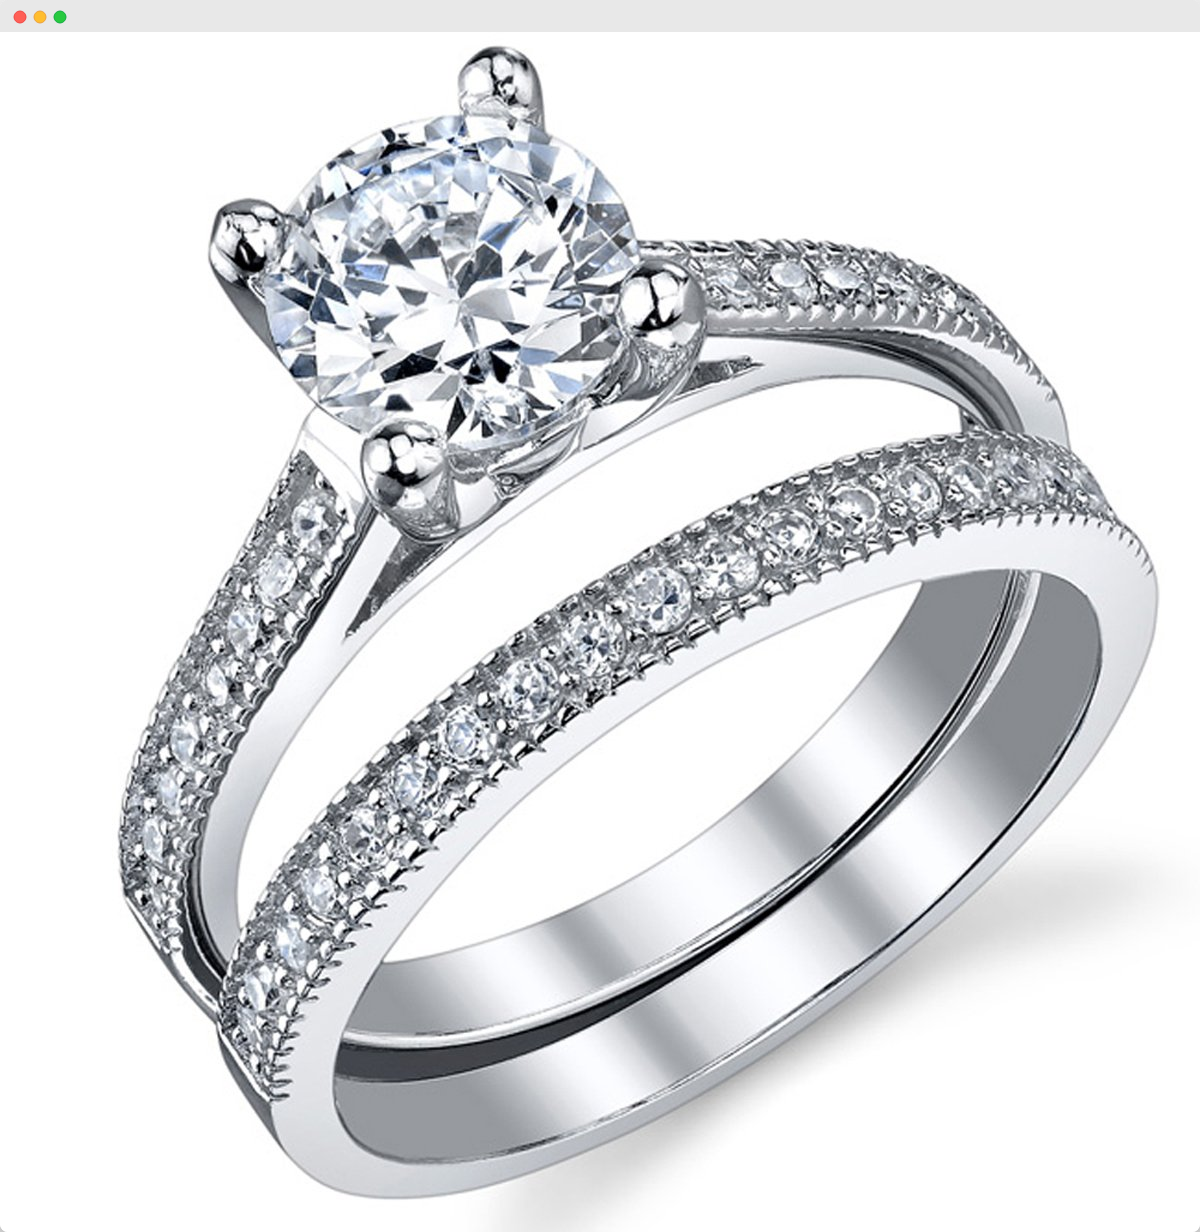 Account Suspended Silver Wedding Rings Engagement Rings Wedding Bands Set Wedding Rings Engagement